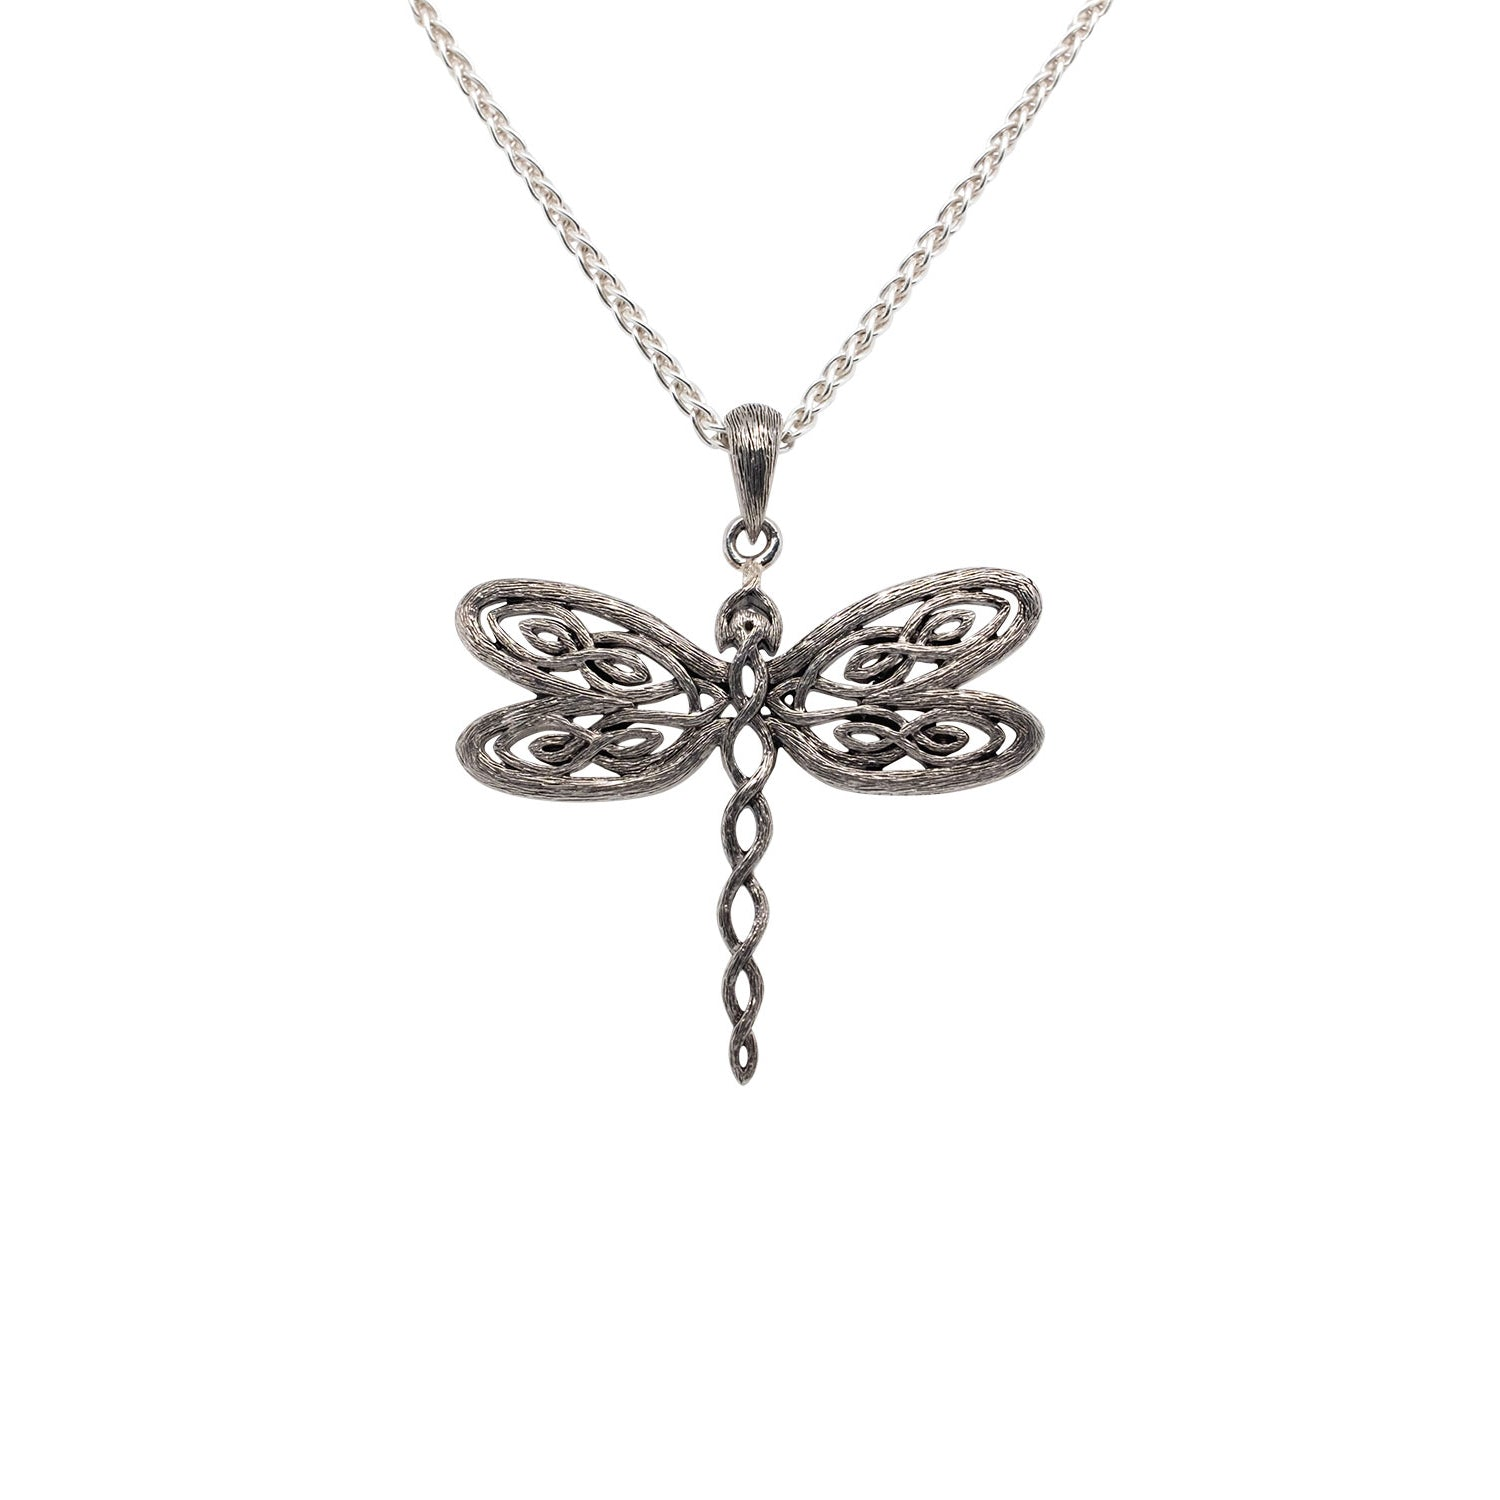 Pendant Rhodium Barked Dragonfly Pendant from welch and company jewelers near syracuse ny